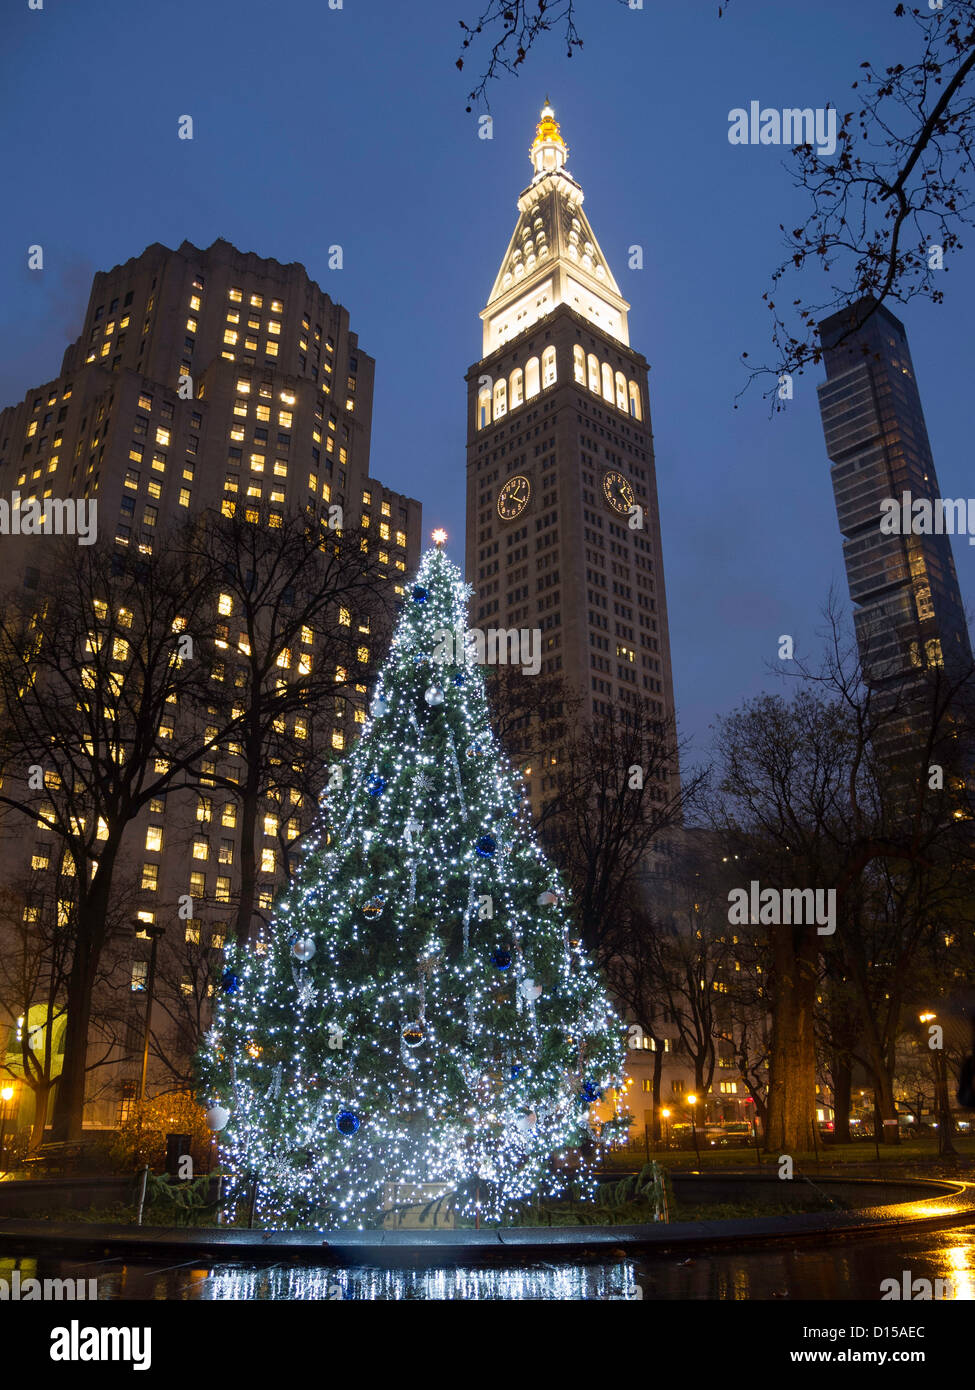 Christmas Tree and Lights, Madison Square Park, NYC Stock Photo ...